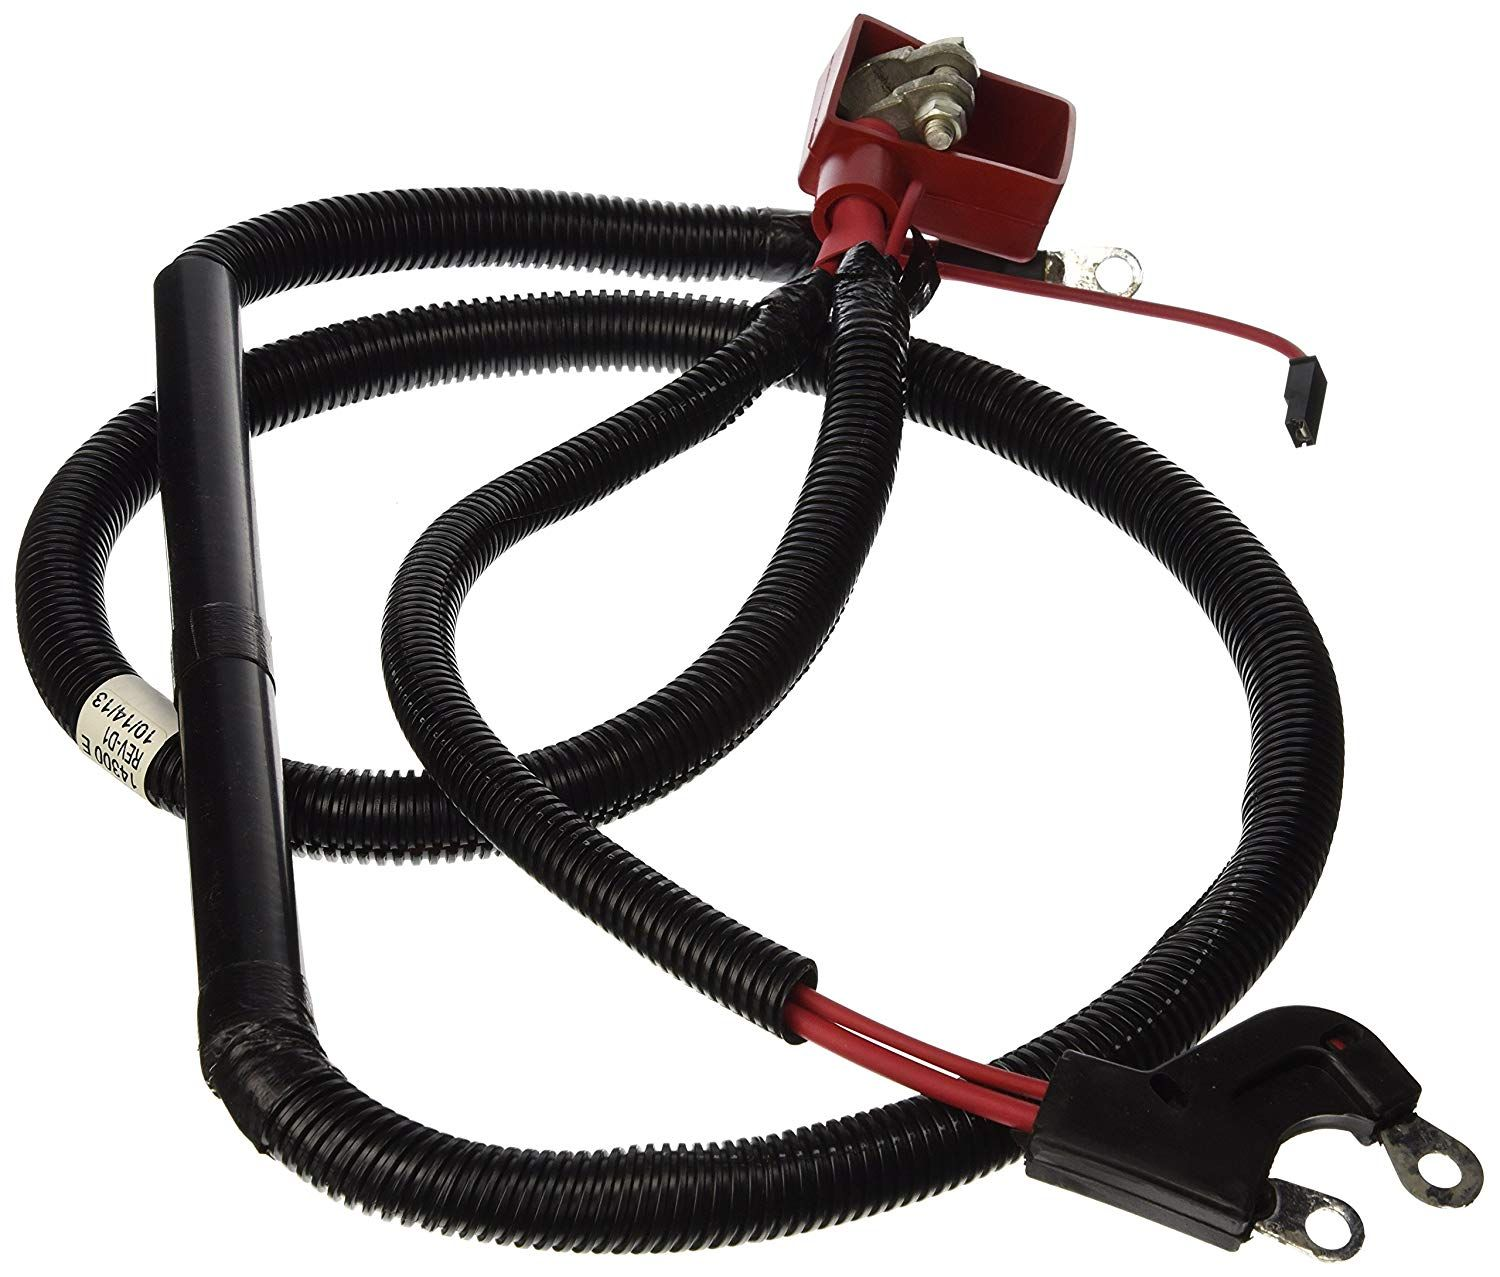 Cartman 4AWG 18-Inch Battery Inverter Cables Set 4Gauge x 18 1 Black /& 1 Red